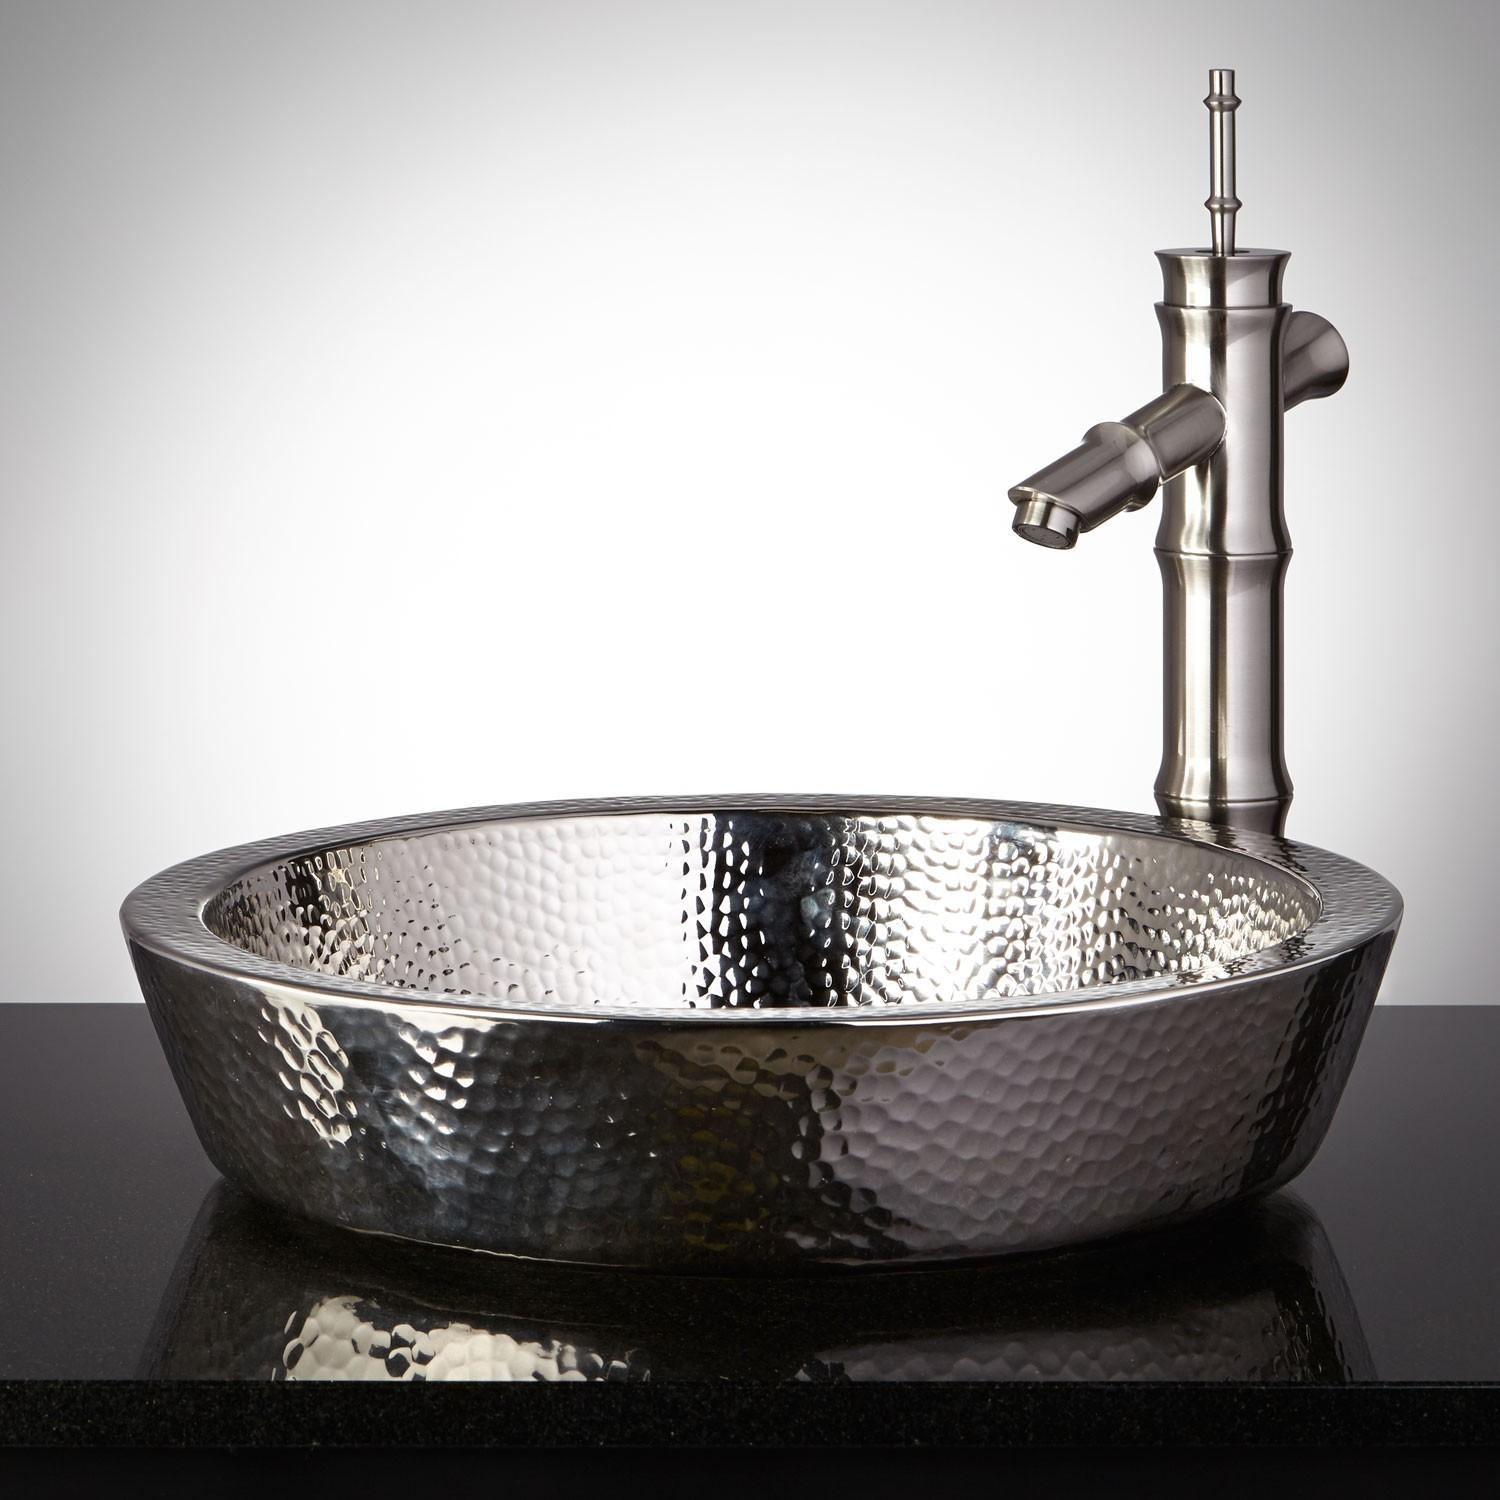 Semi Recessed Copper Sink Hammered Polished Nickel